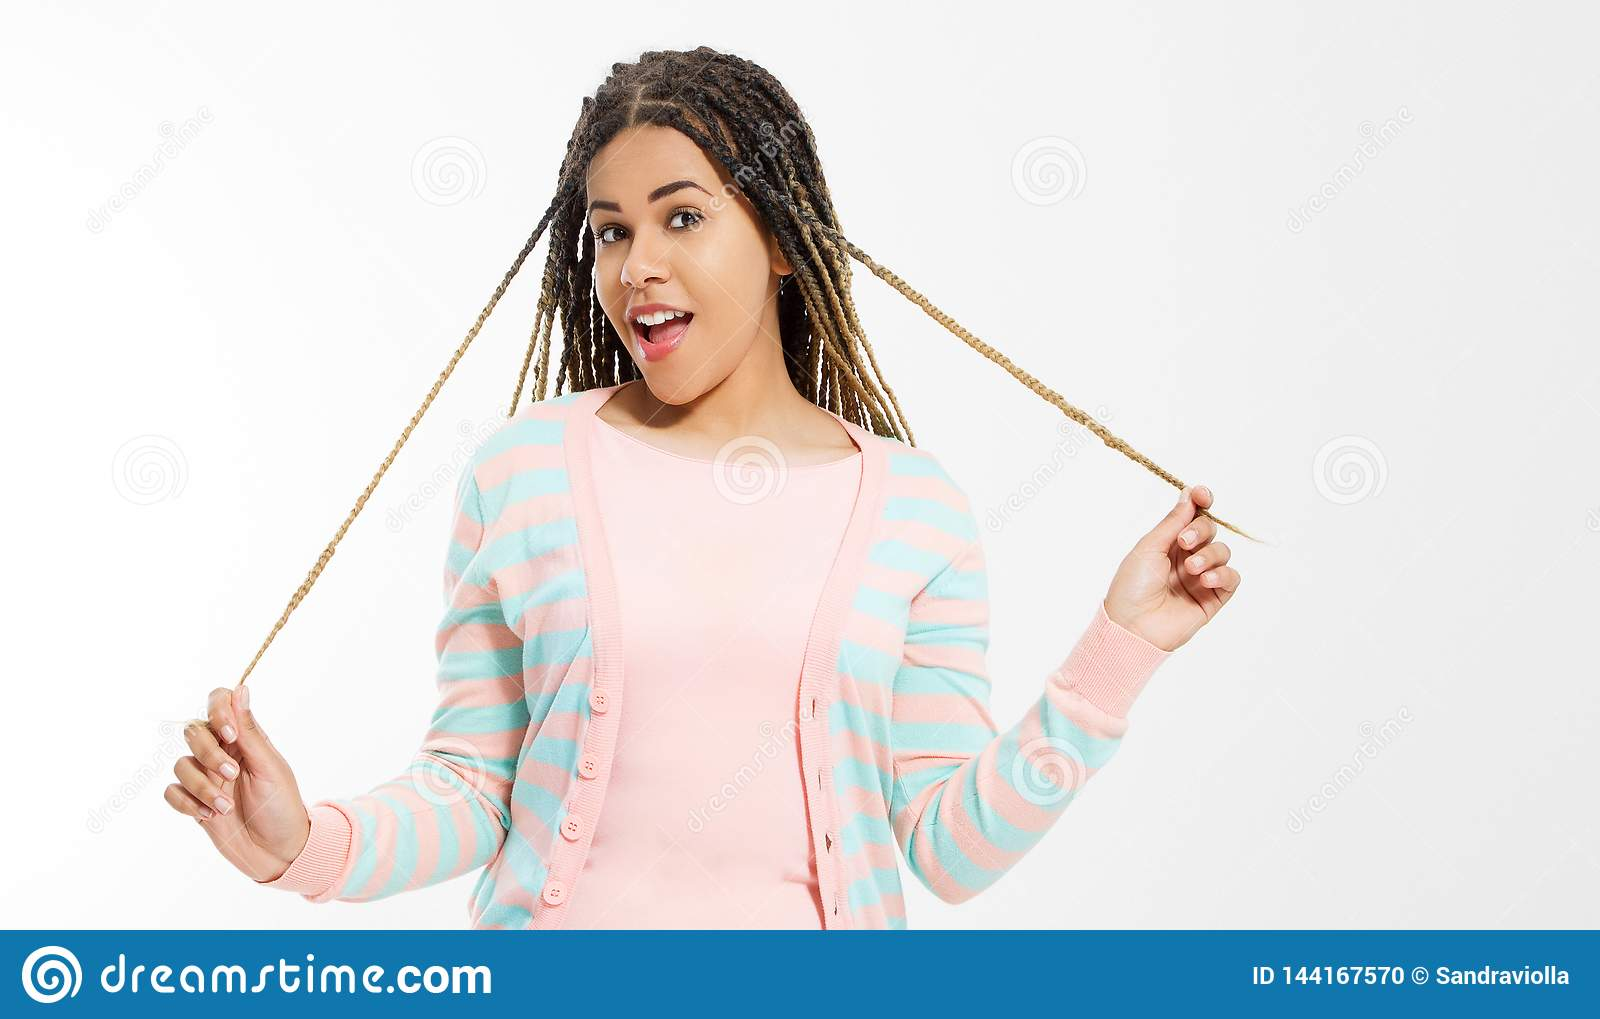 African american girl in fashion clothes on white background. Woman hipster with afro hair style. Copy space. Banner